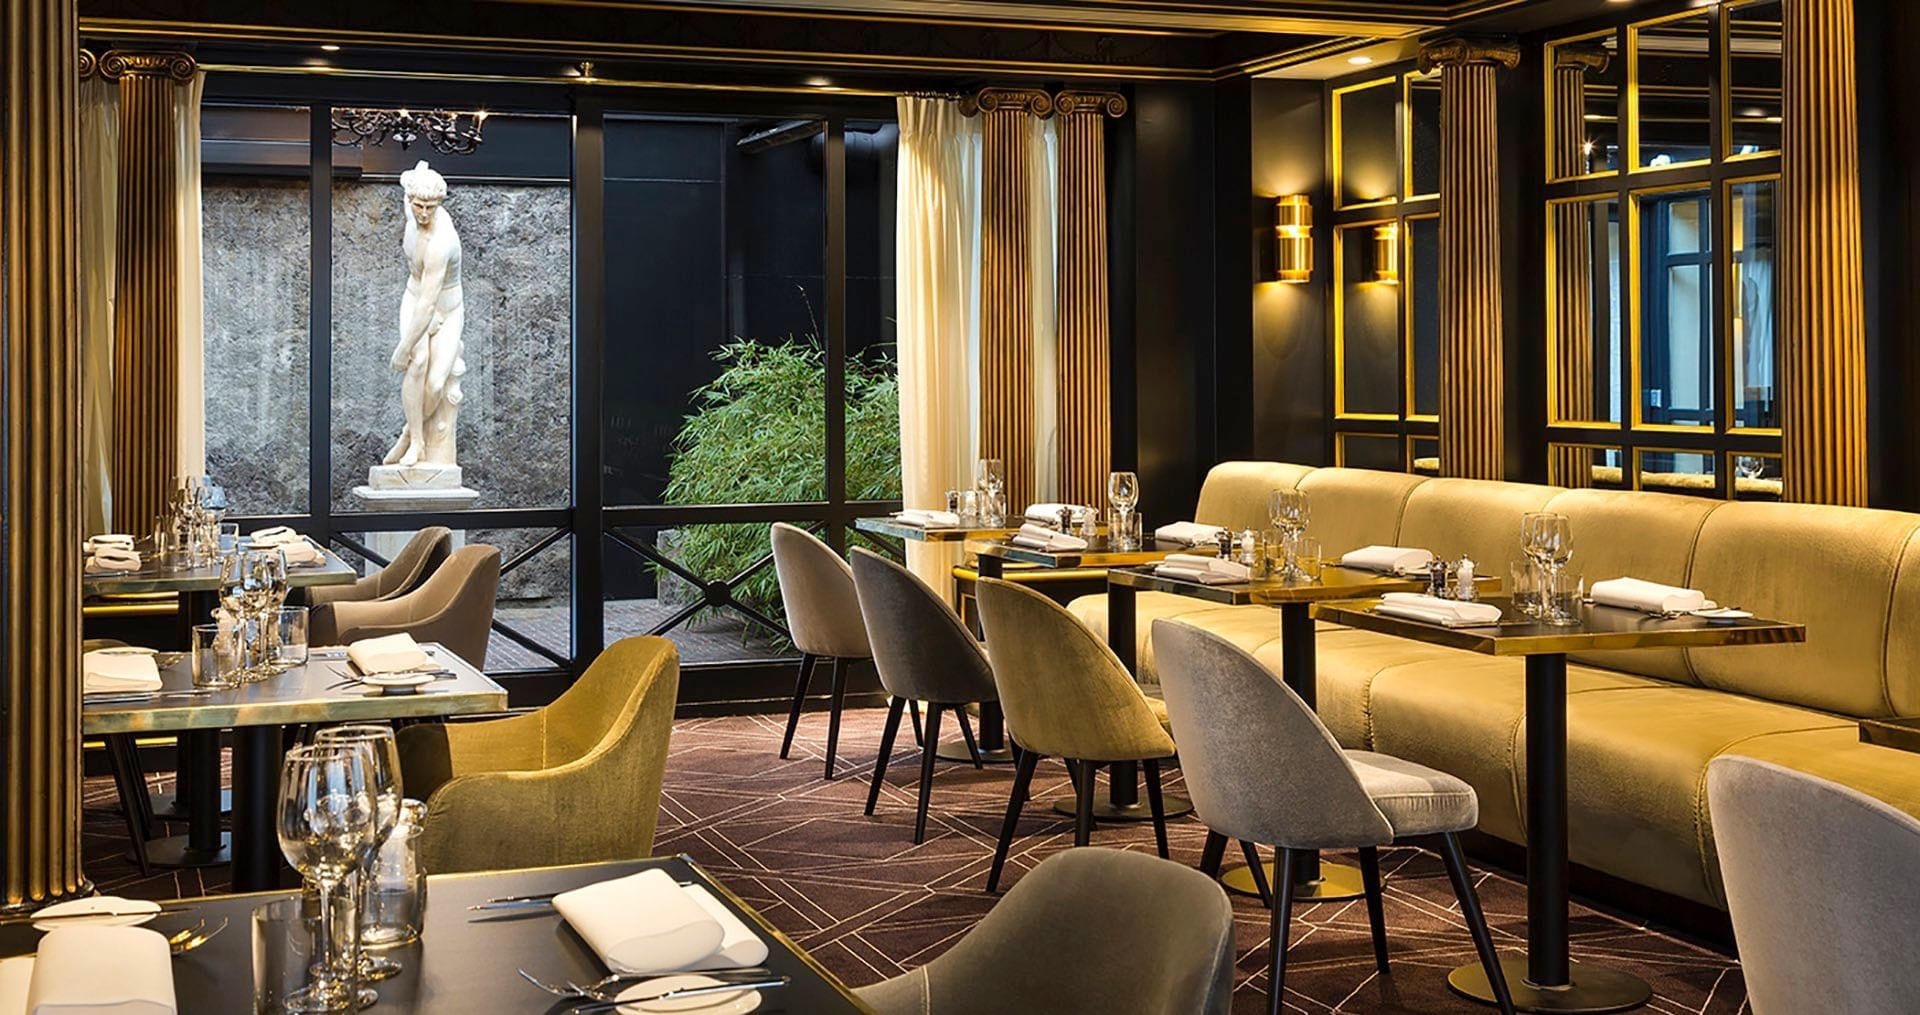 The Avenue Restaurant at Hotel Barsey by Warwick